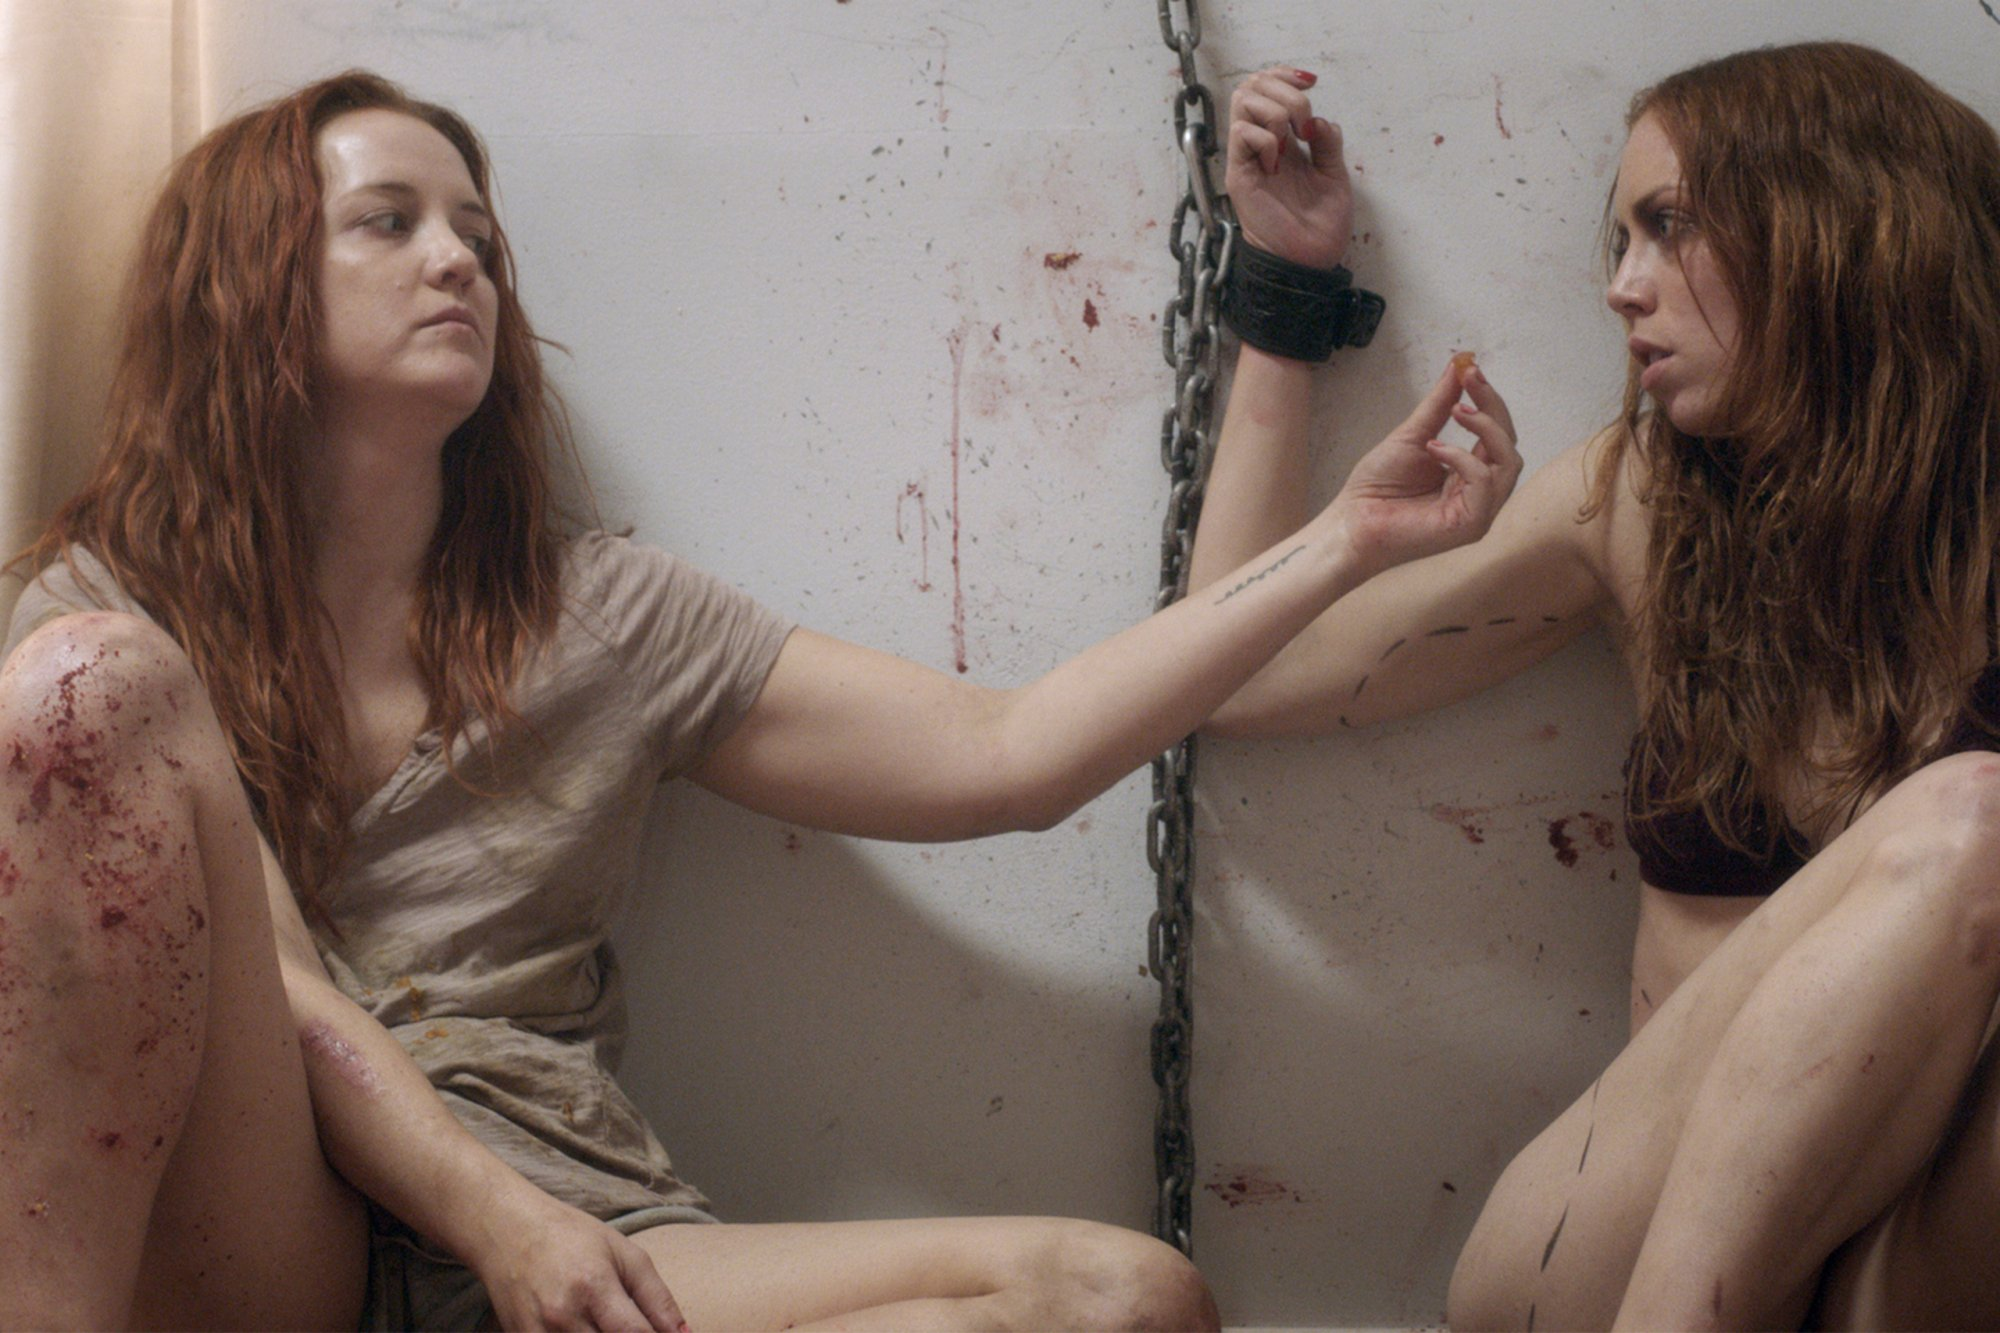 Patrick Kennelly's SXSW Psychological Thriller EXCESS FLESH Gets a 2016 Theatrical Release | VIDEO